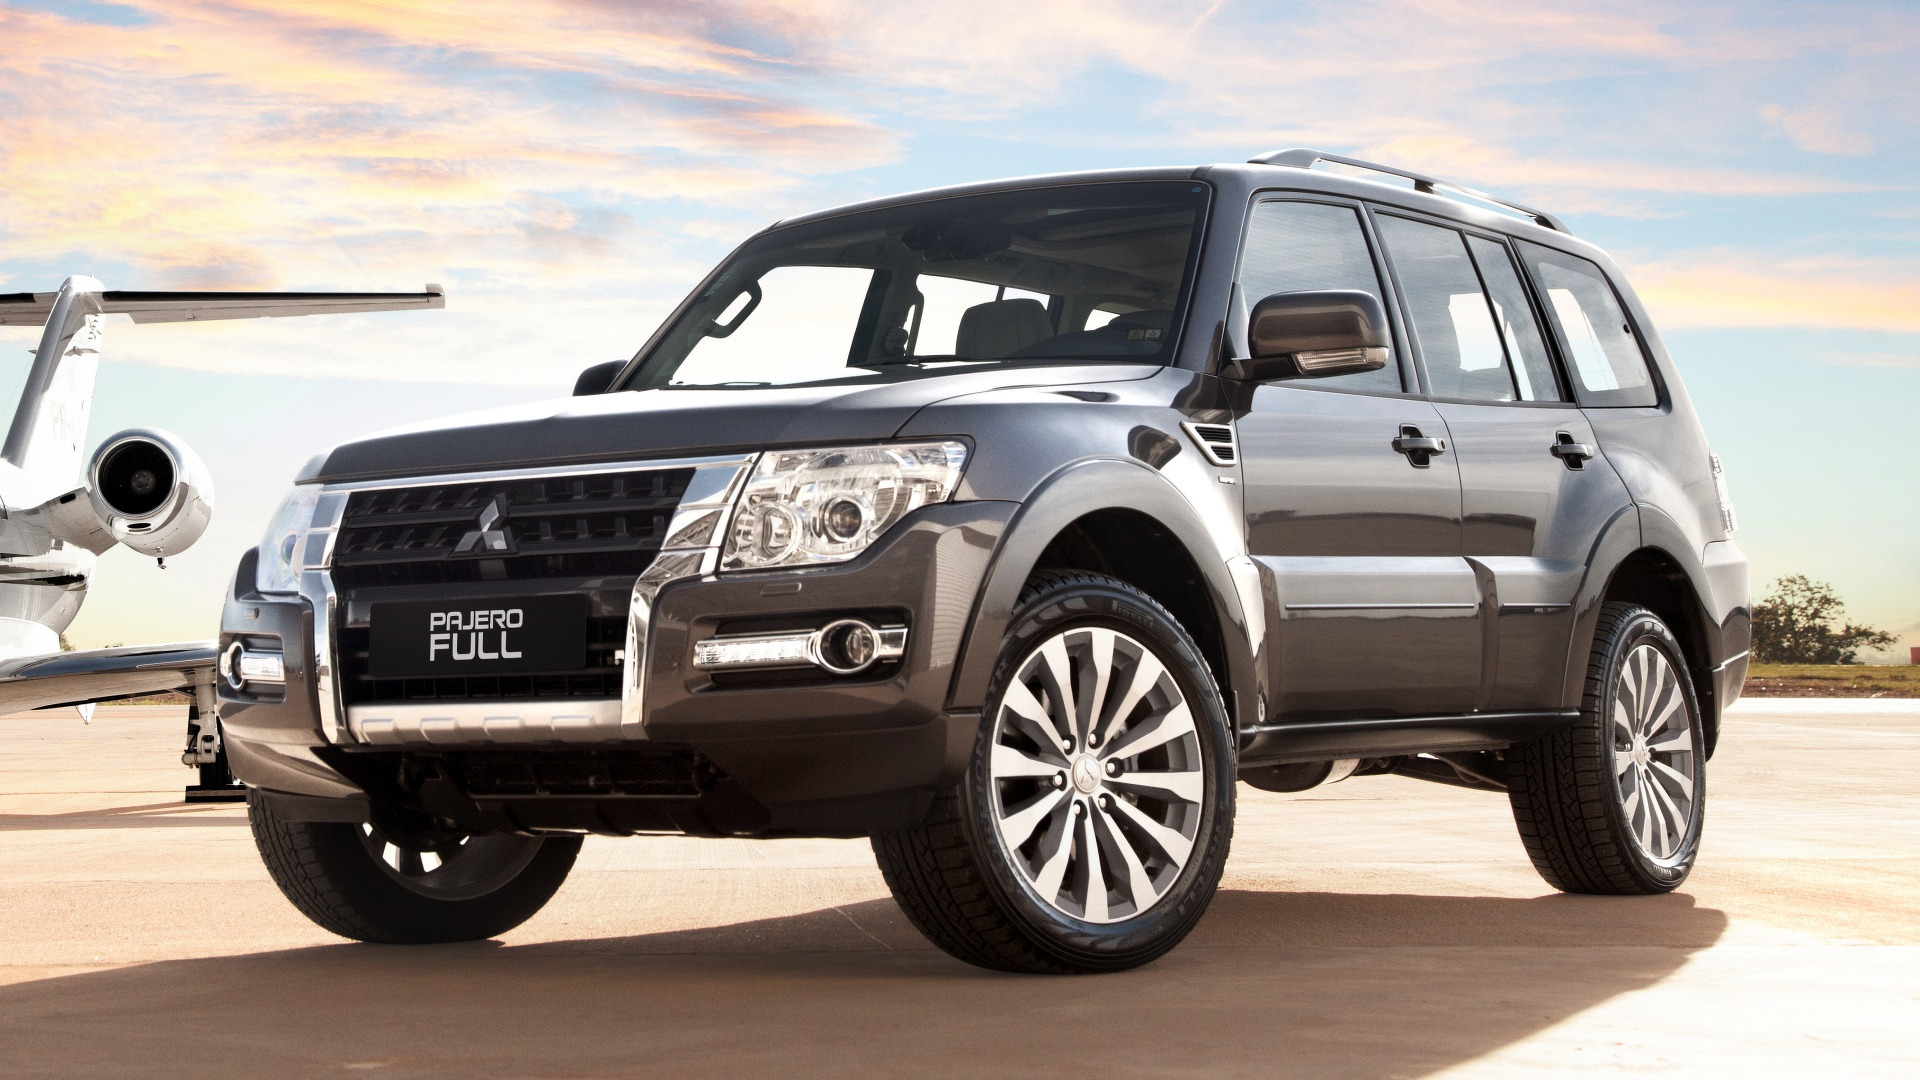 Pajero Full 2018 2017 2018 Best Cars Reviews